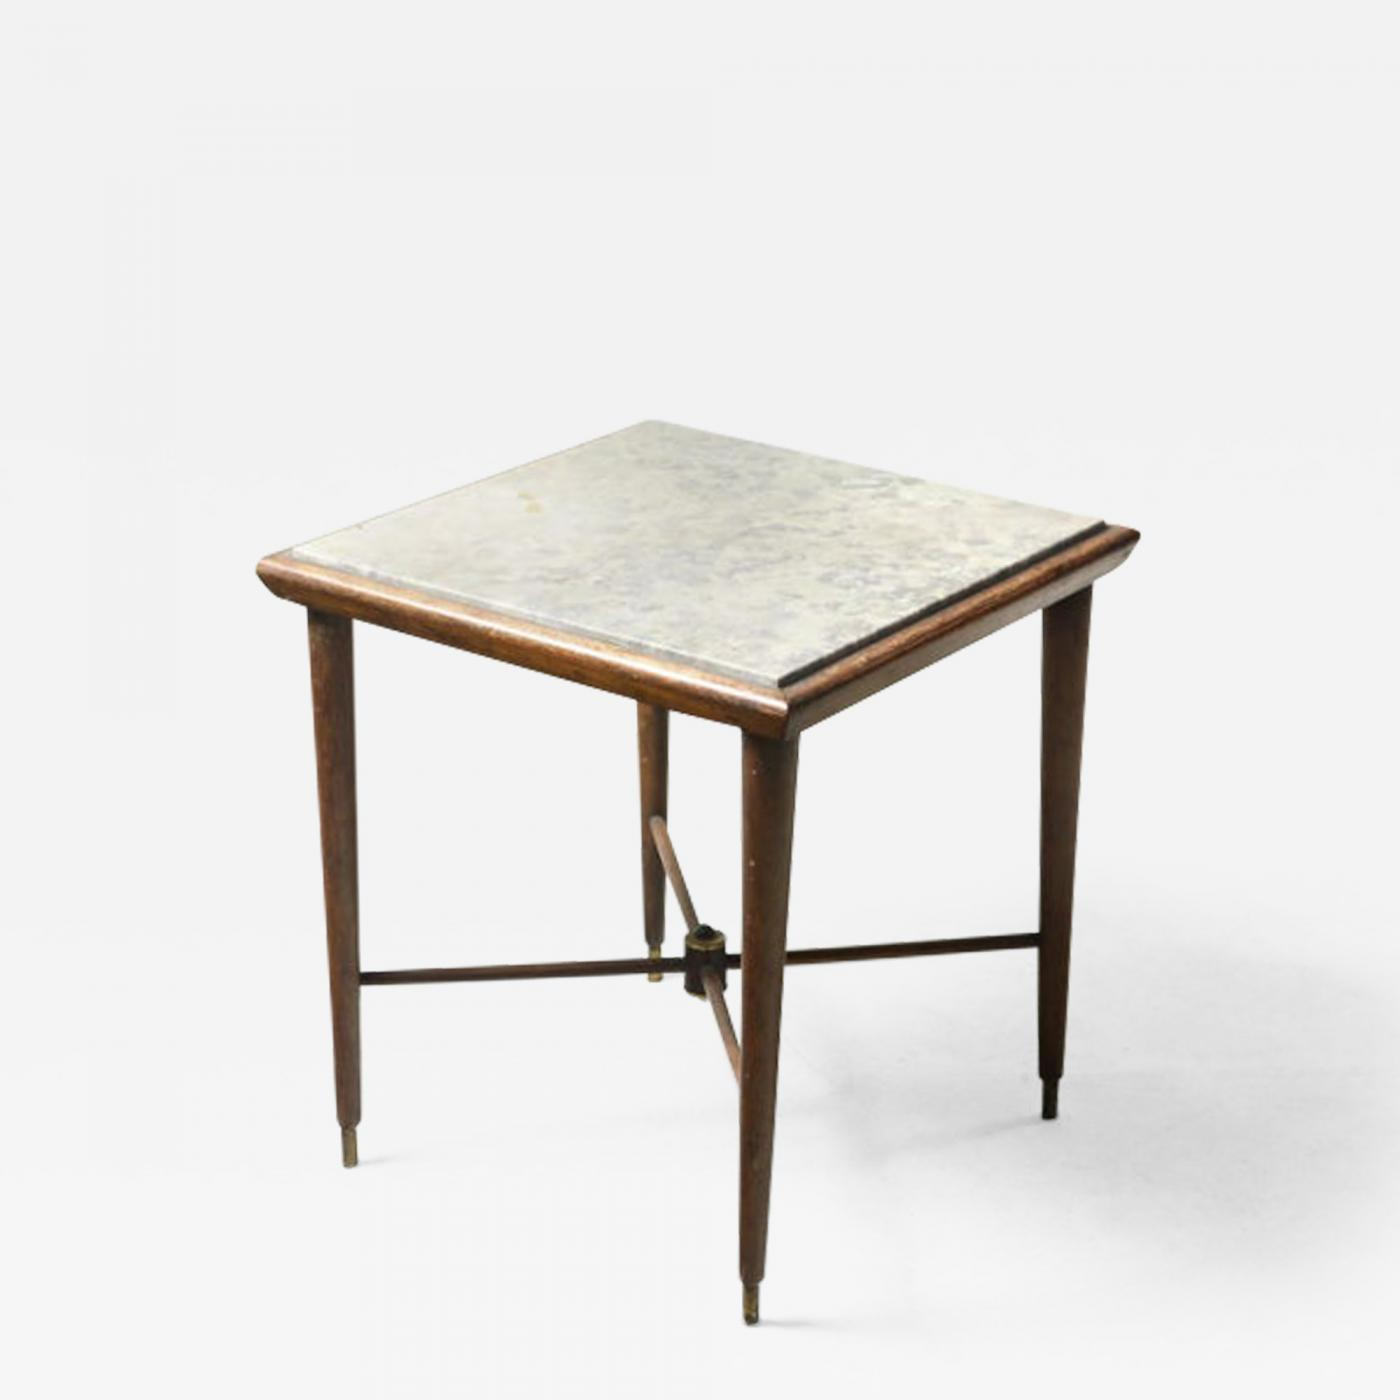 Picture of: Giuseppe Scapinelli Mid Century Modern Marble Top Side Table By Giuseppe Scapinelli Brazil 1950s